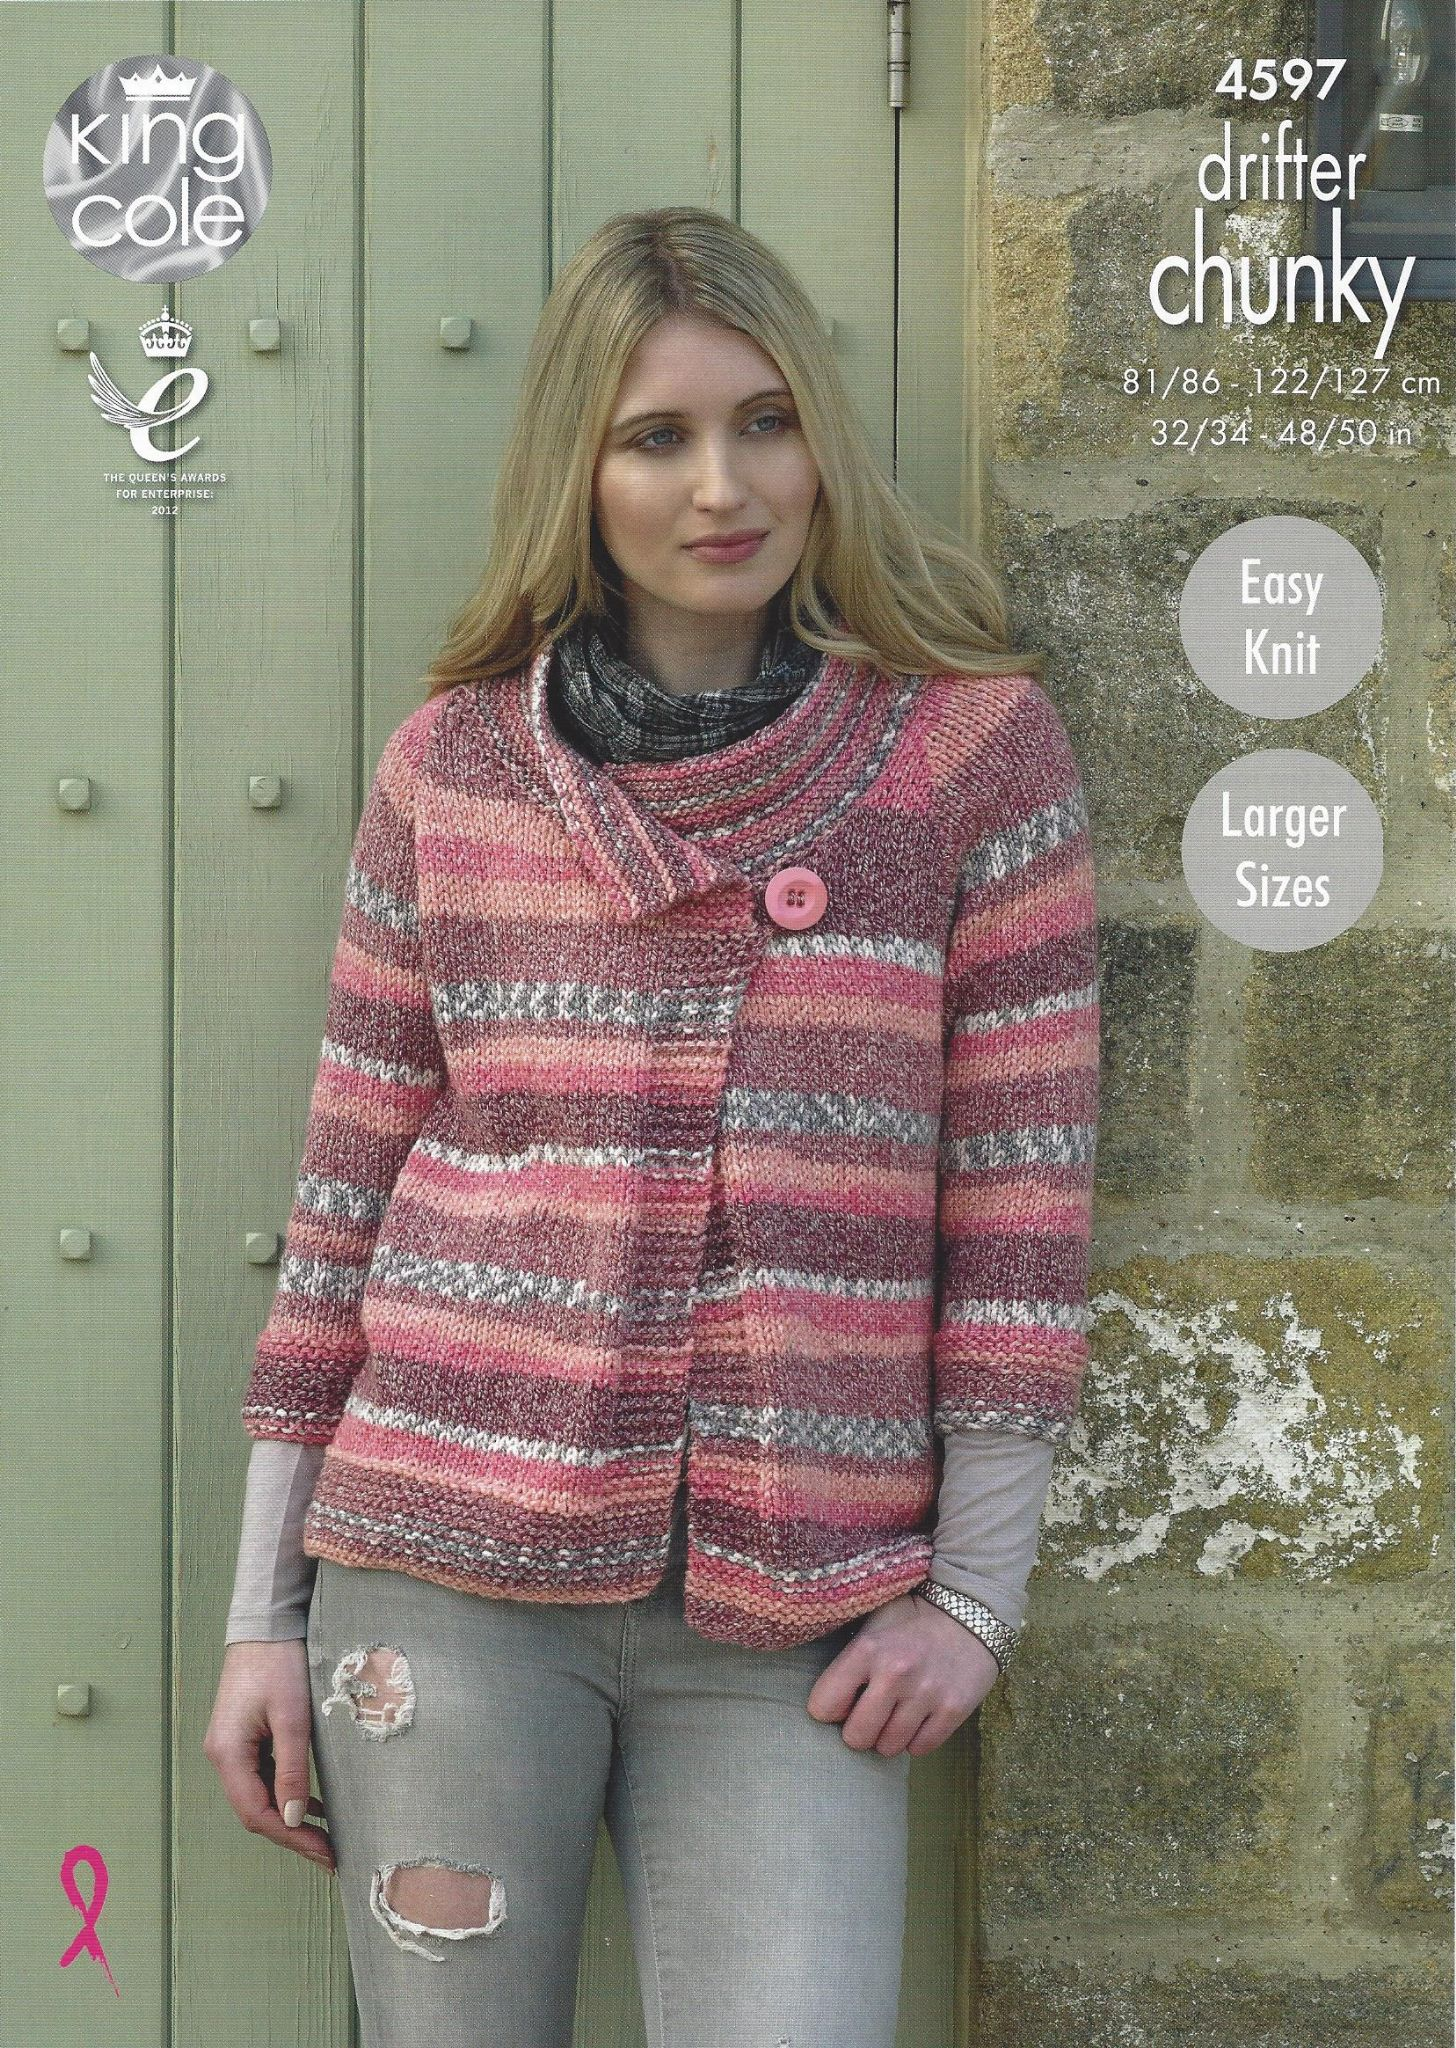 King Cole Drifter Chunky 4597 Ladies Jacket Knitting Pattern